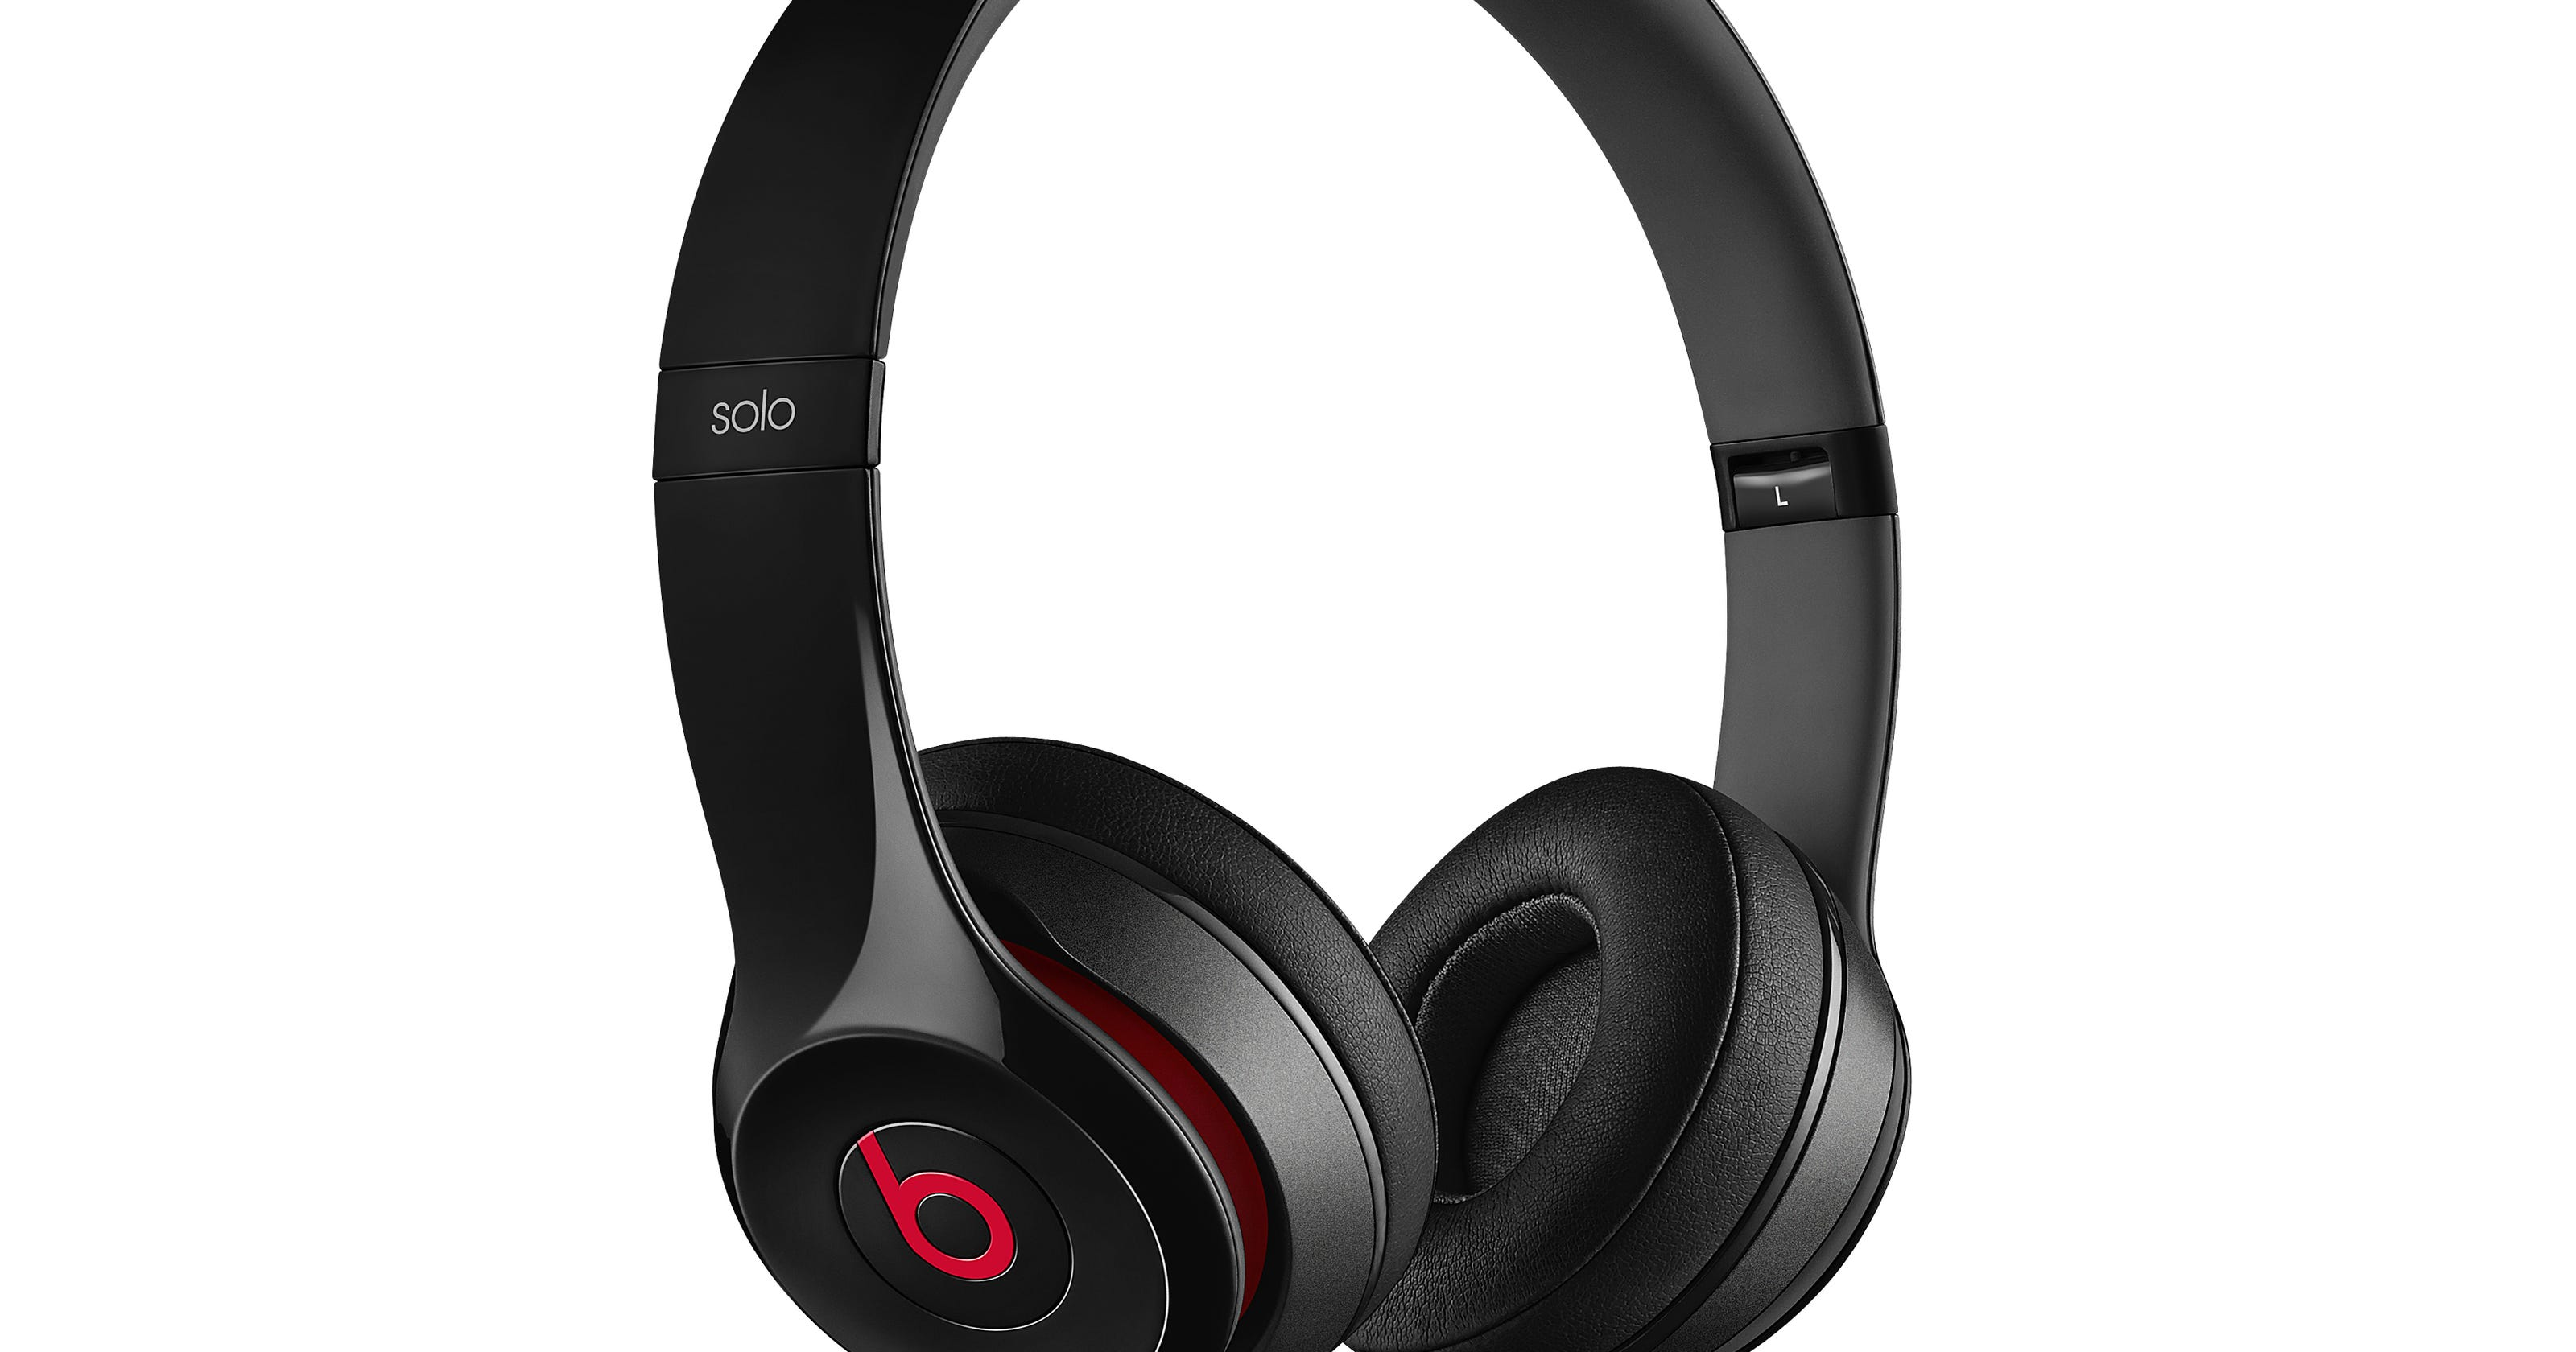 Apple back to school promo: Get free Beats headphones when buying a Mac